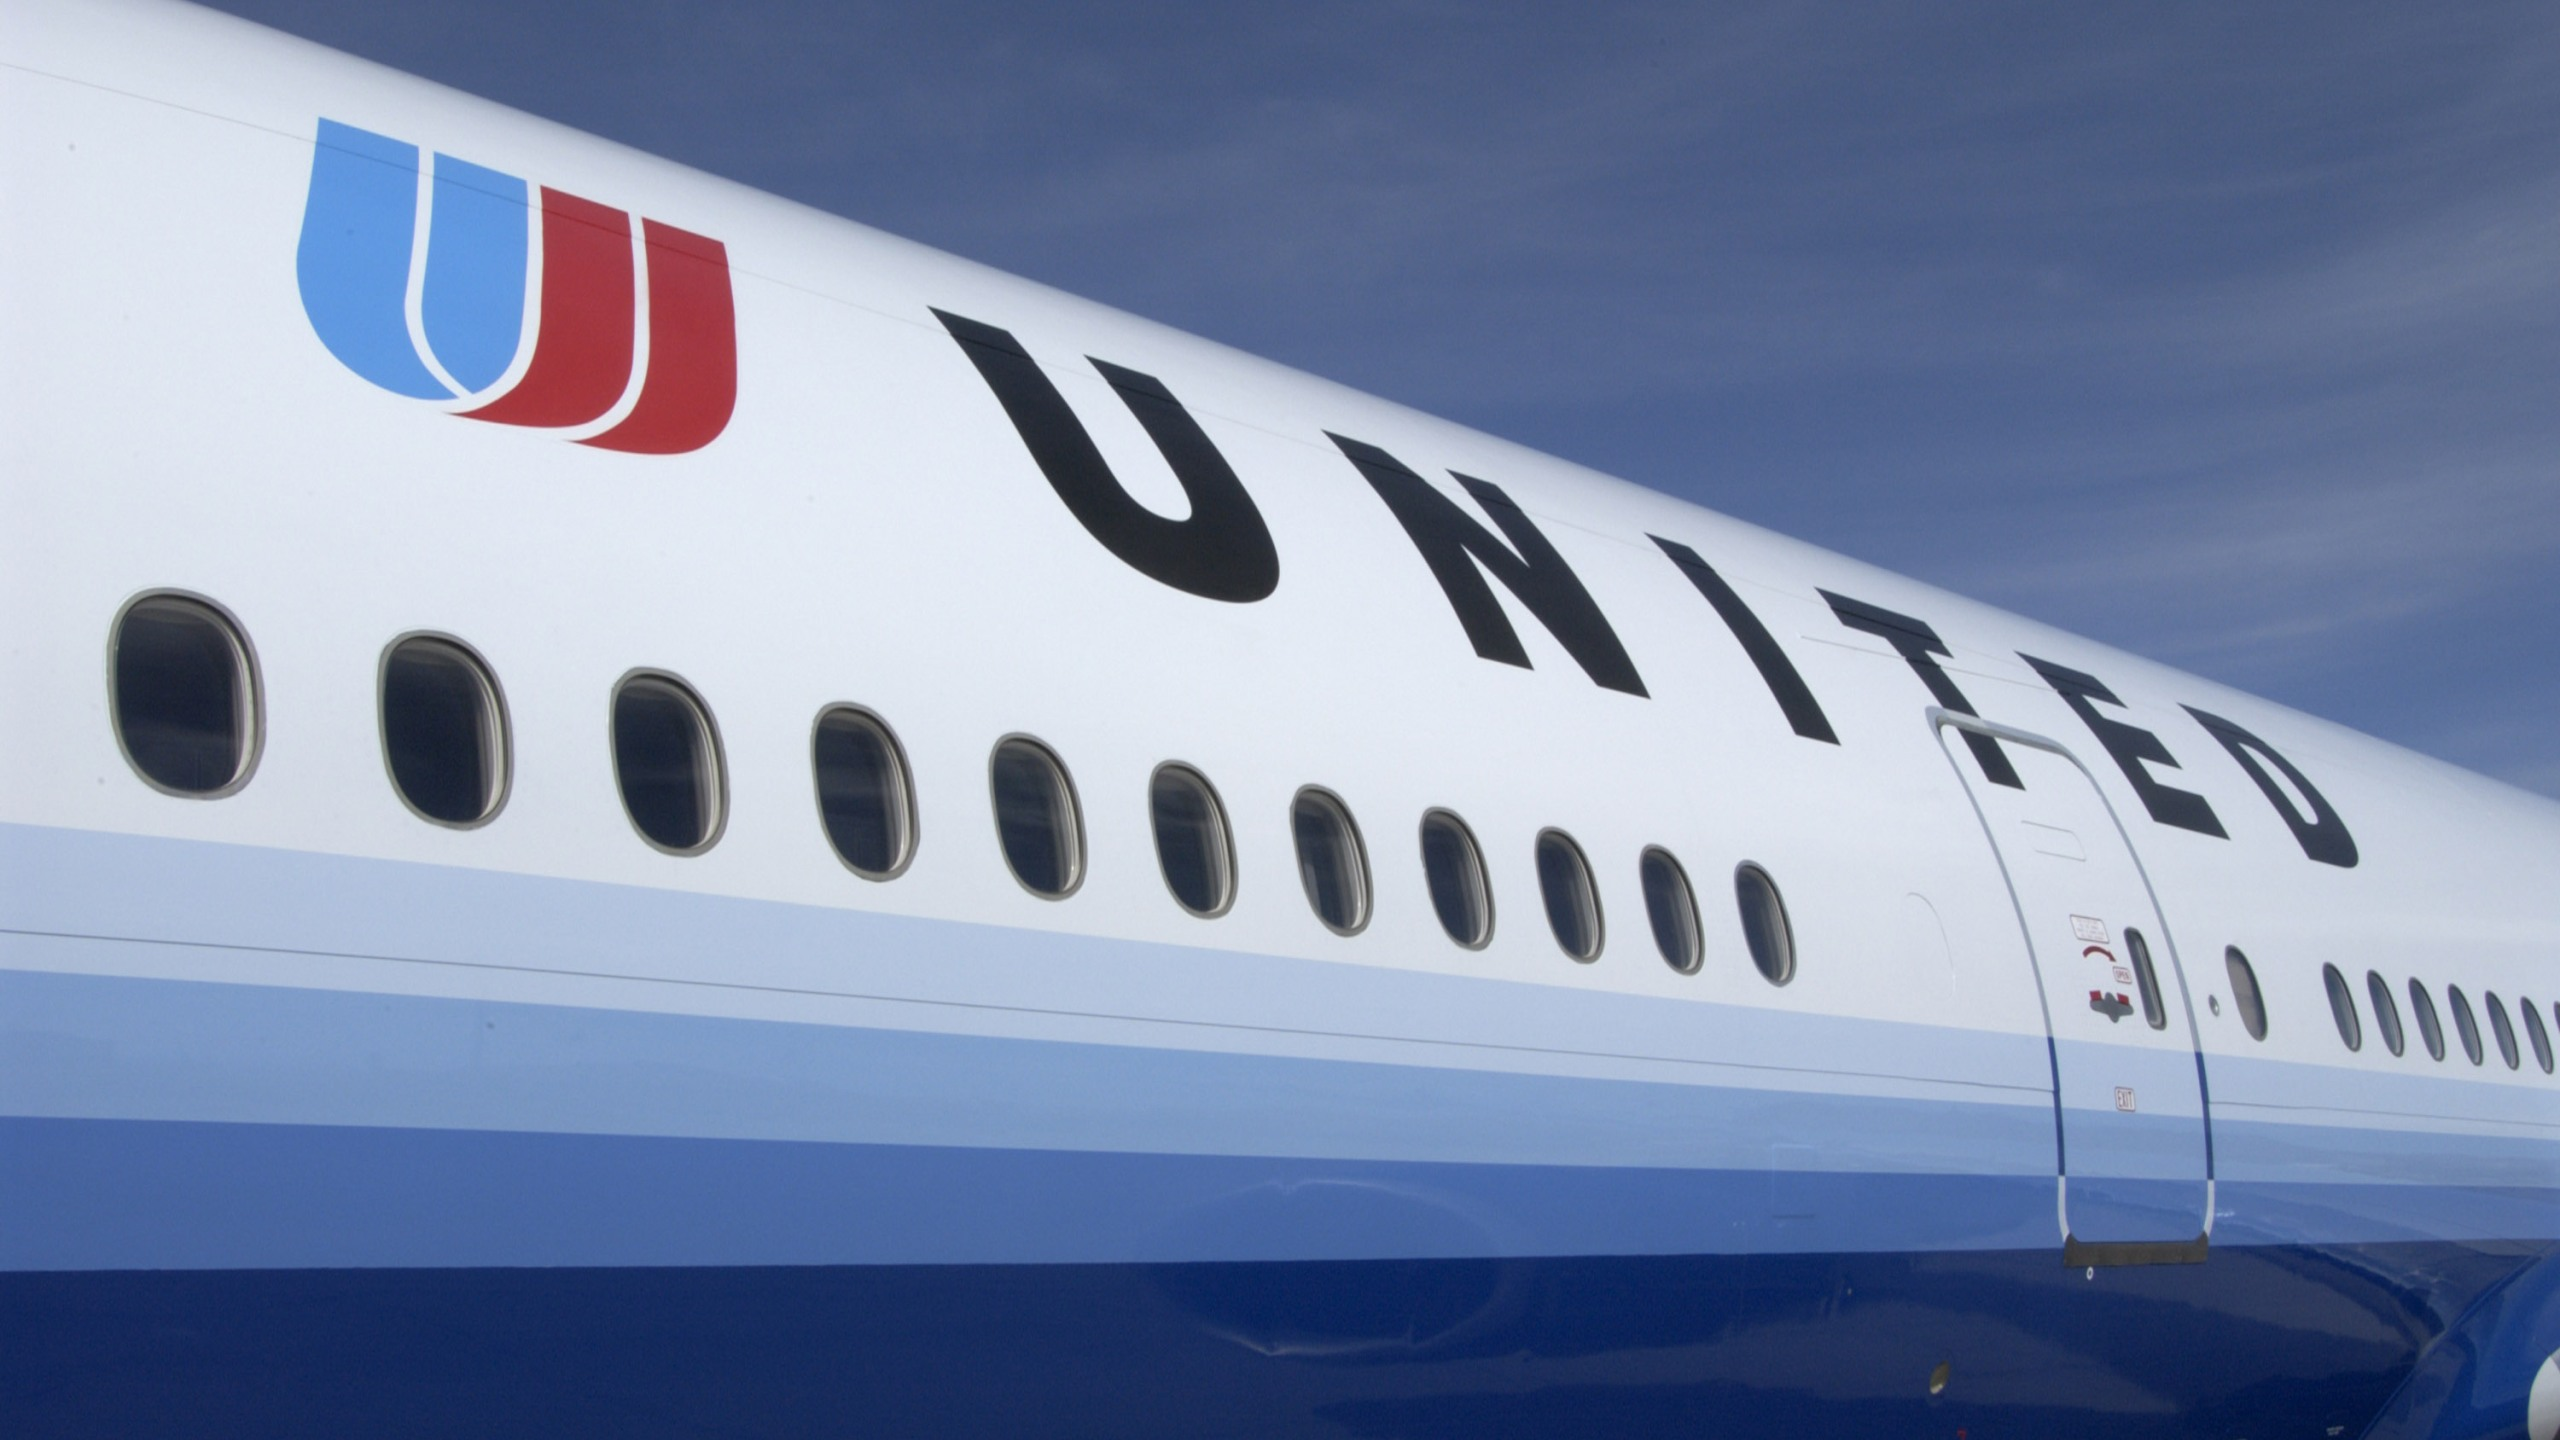 A United Airlines plane is seen in a file photo. (Credit: United Airlines via Getty Images))